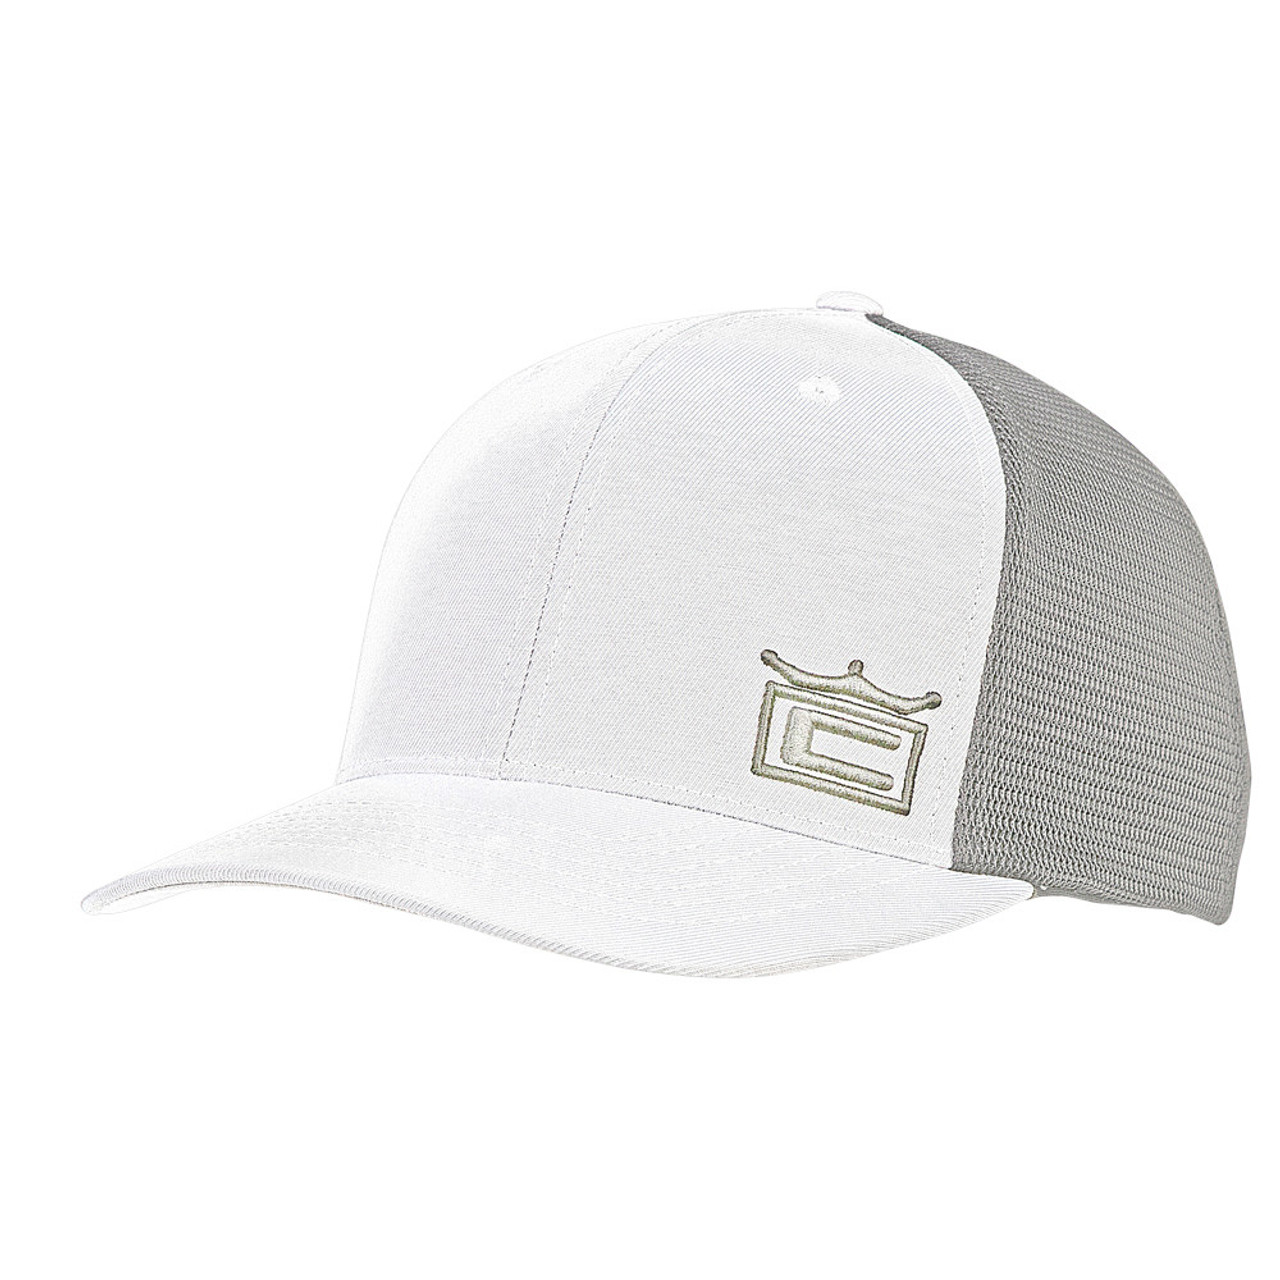 Cobra Crown Trucker Snapback Cap - White